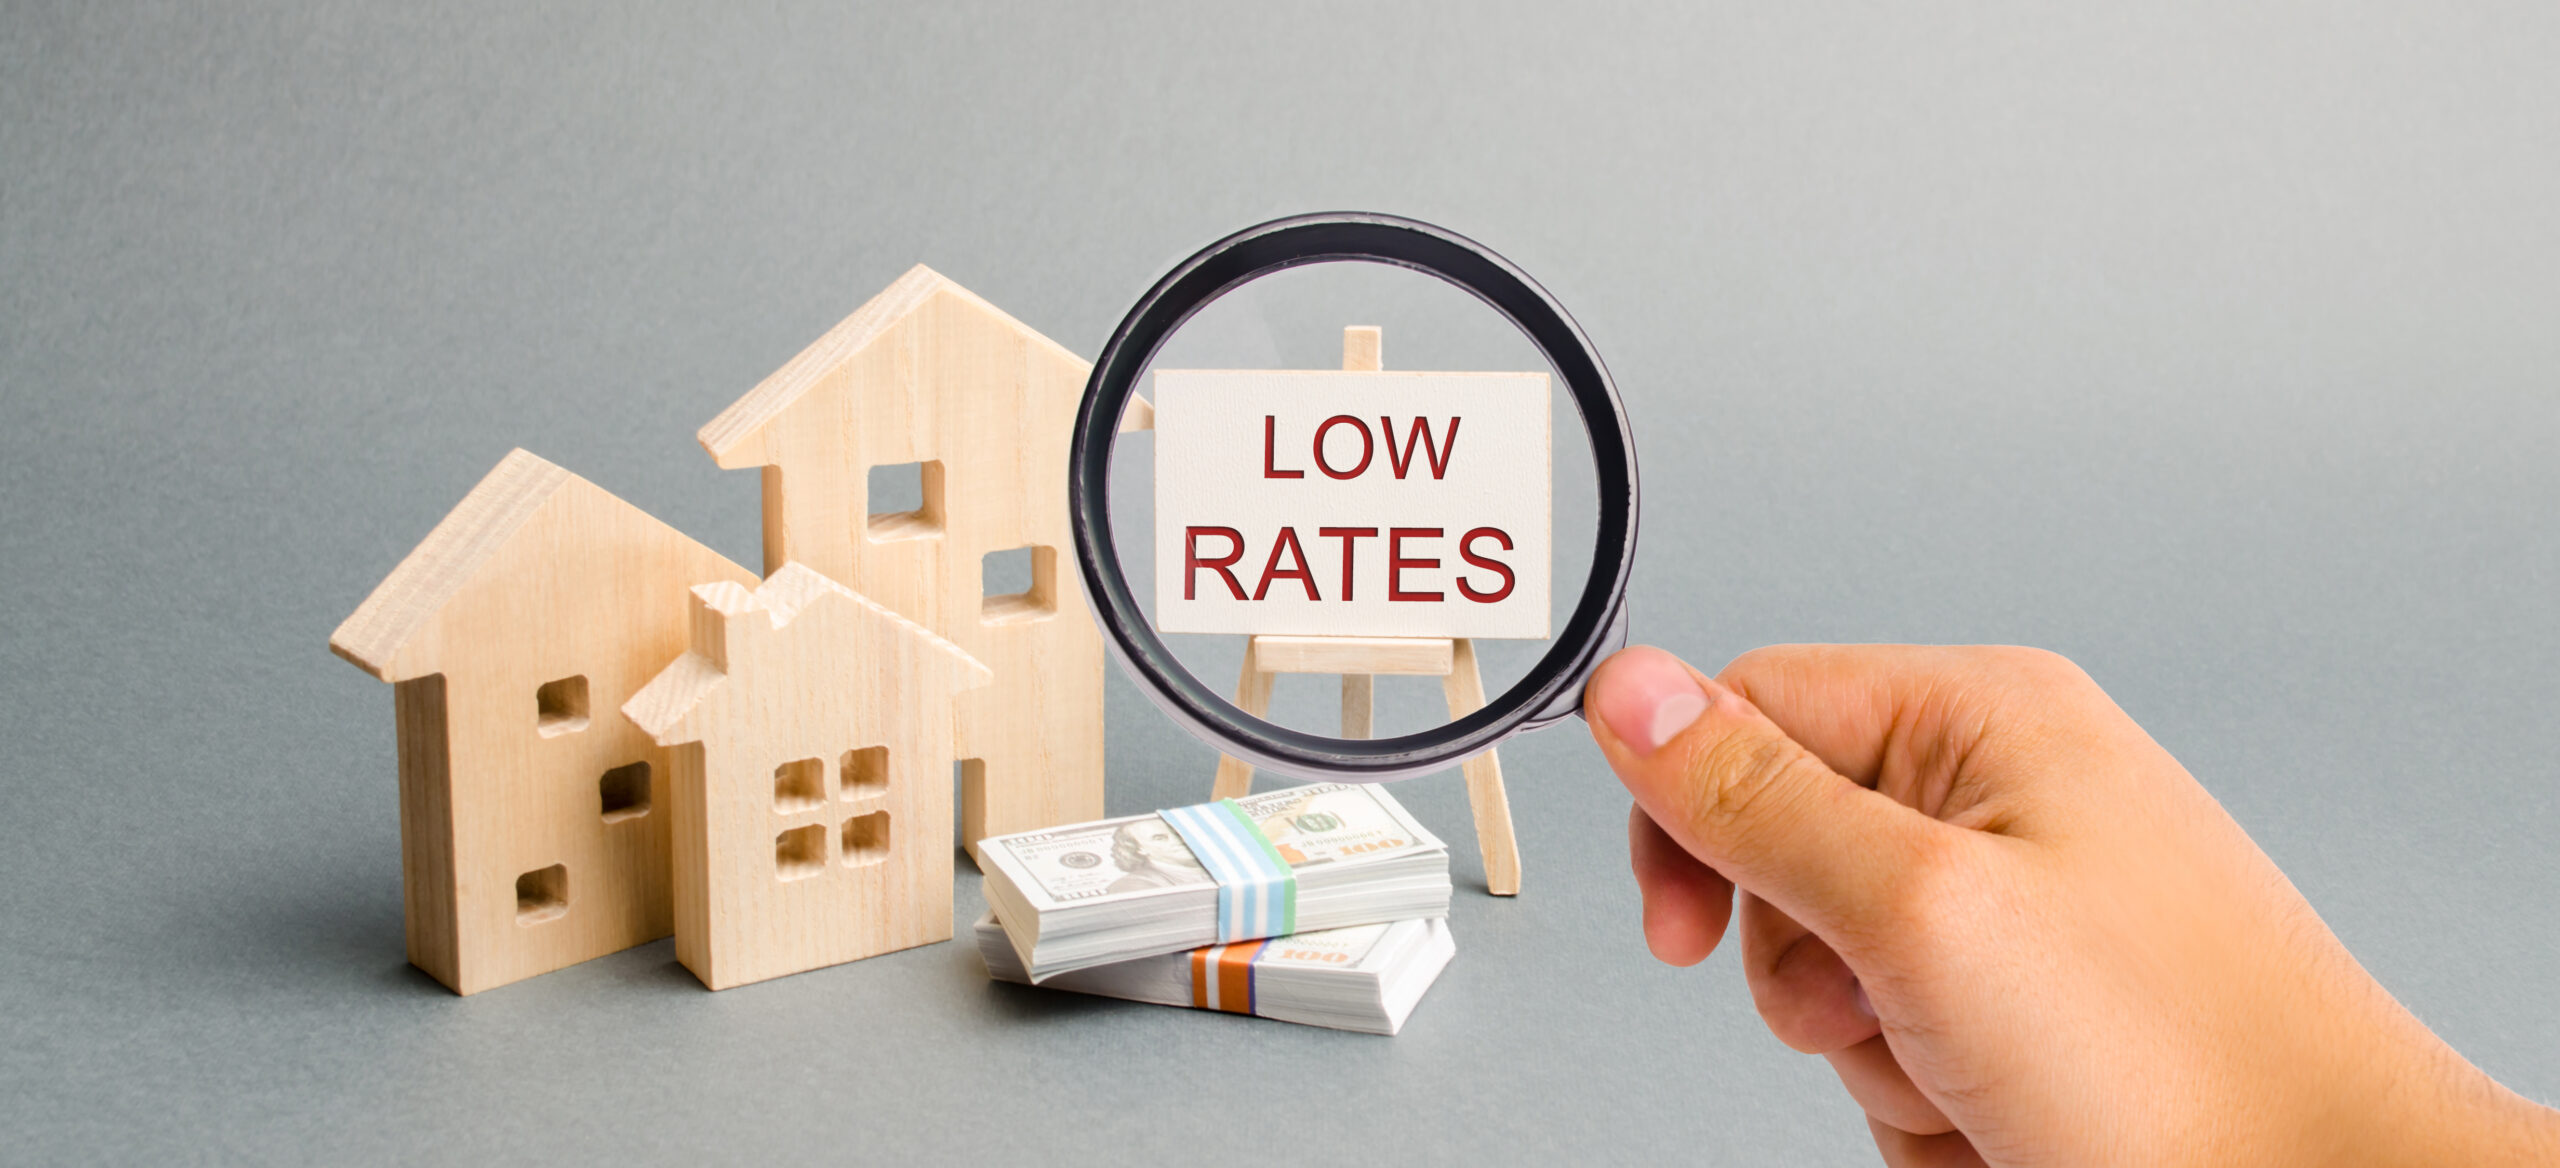 It is a great time to take advantage of the current interest rates